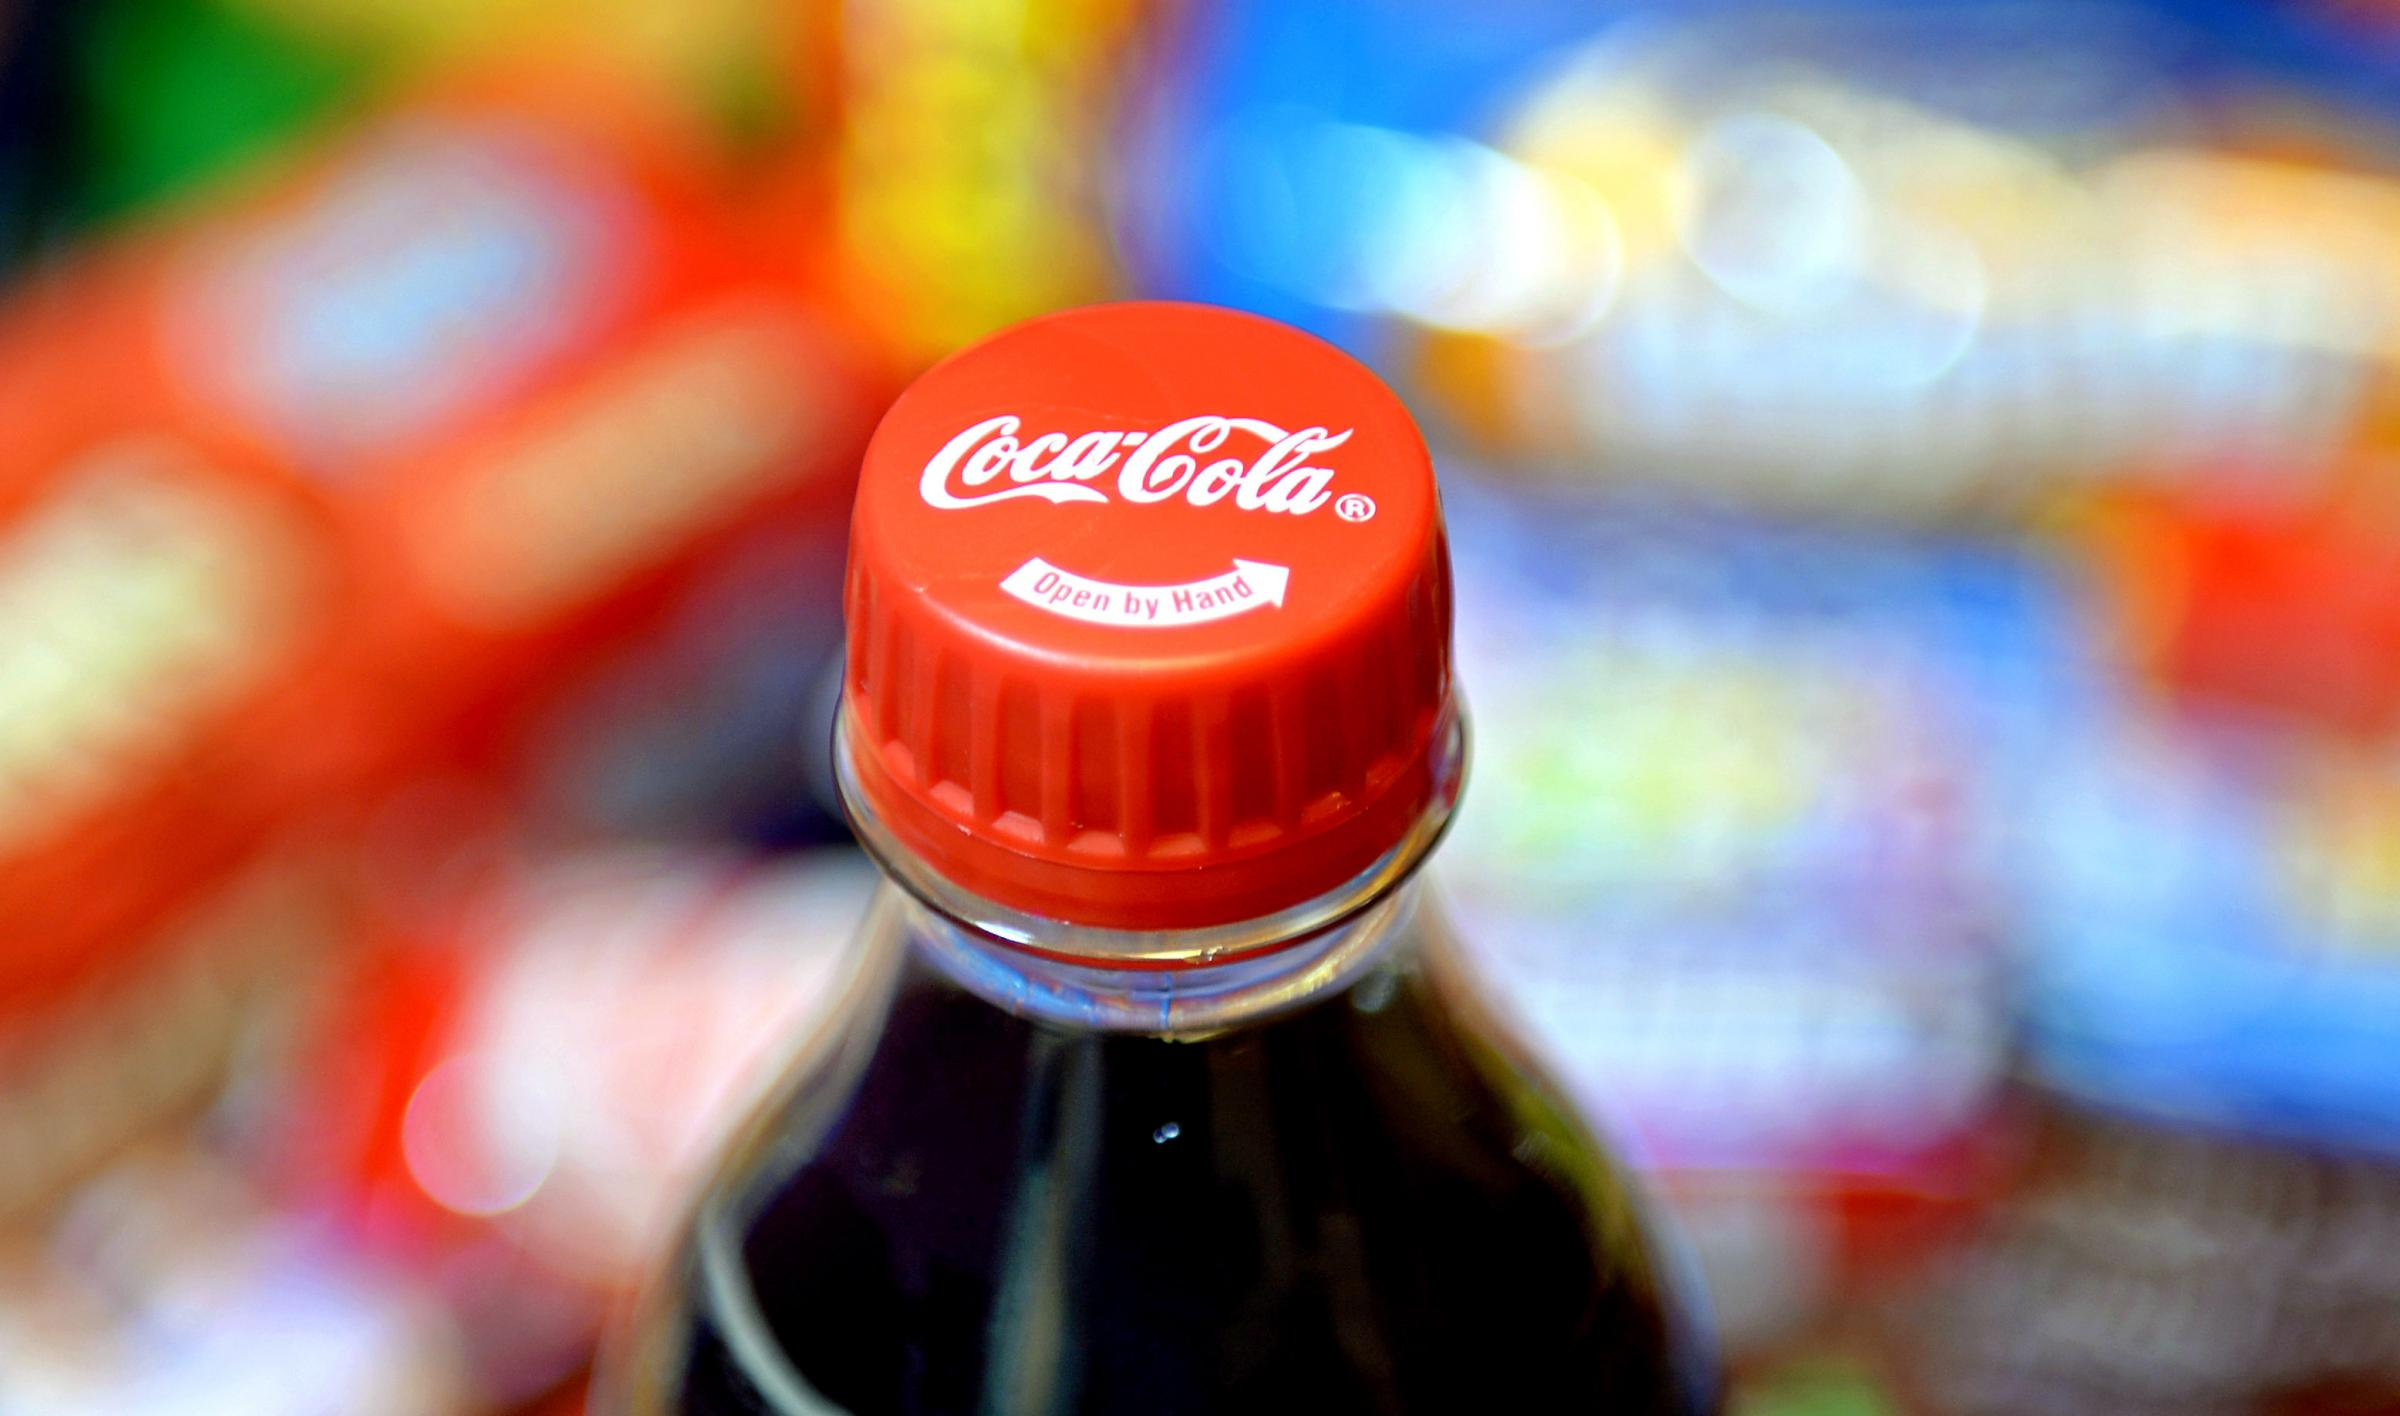 Firms including Coca-Cola have signed a statement